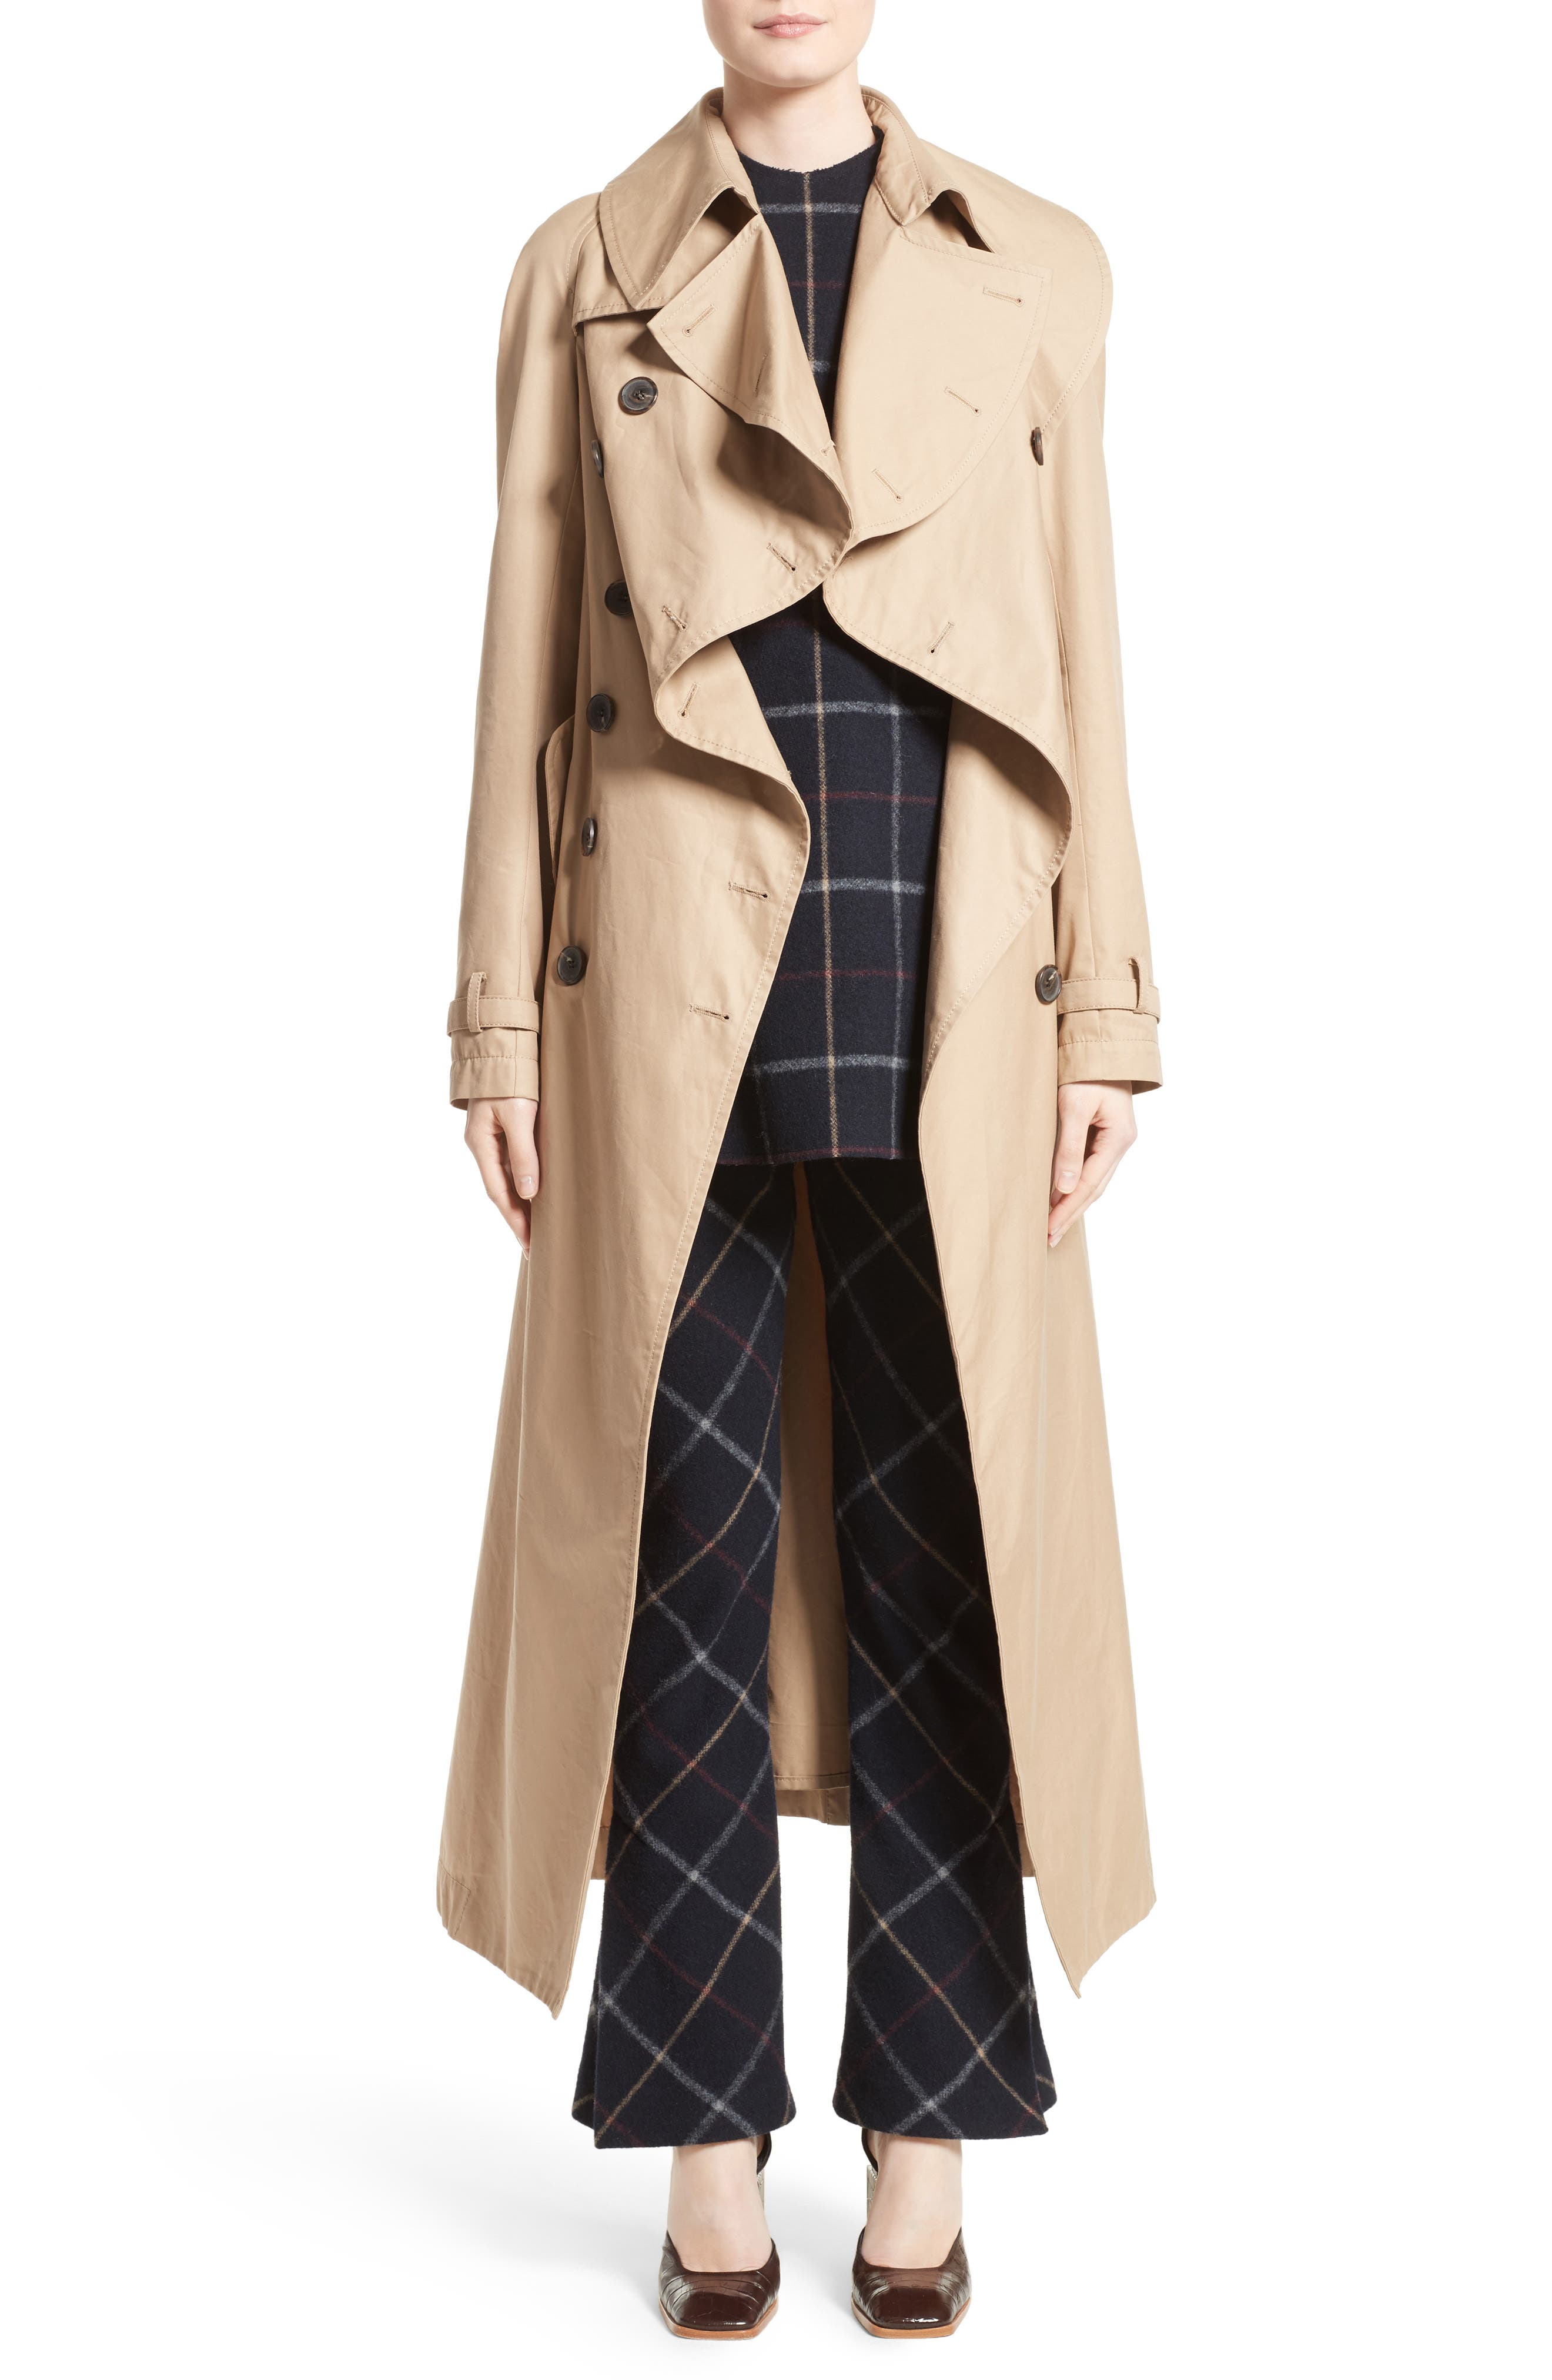 Alternate Image 1 Selected - A.W.A.K.E. Oversized Cotton Trench Coat